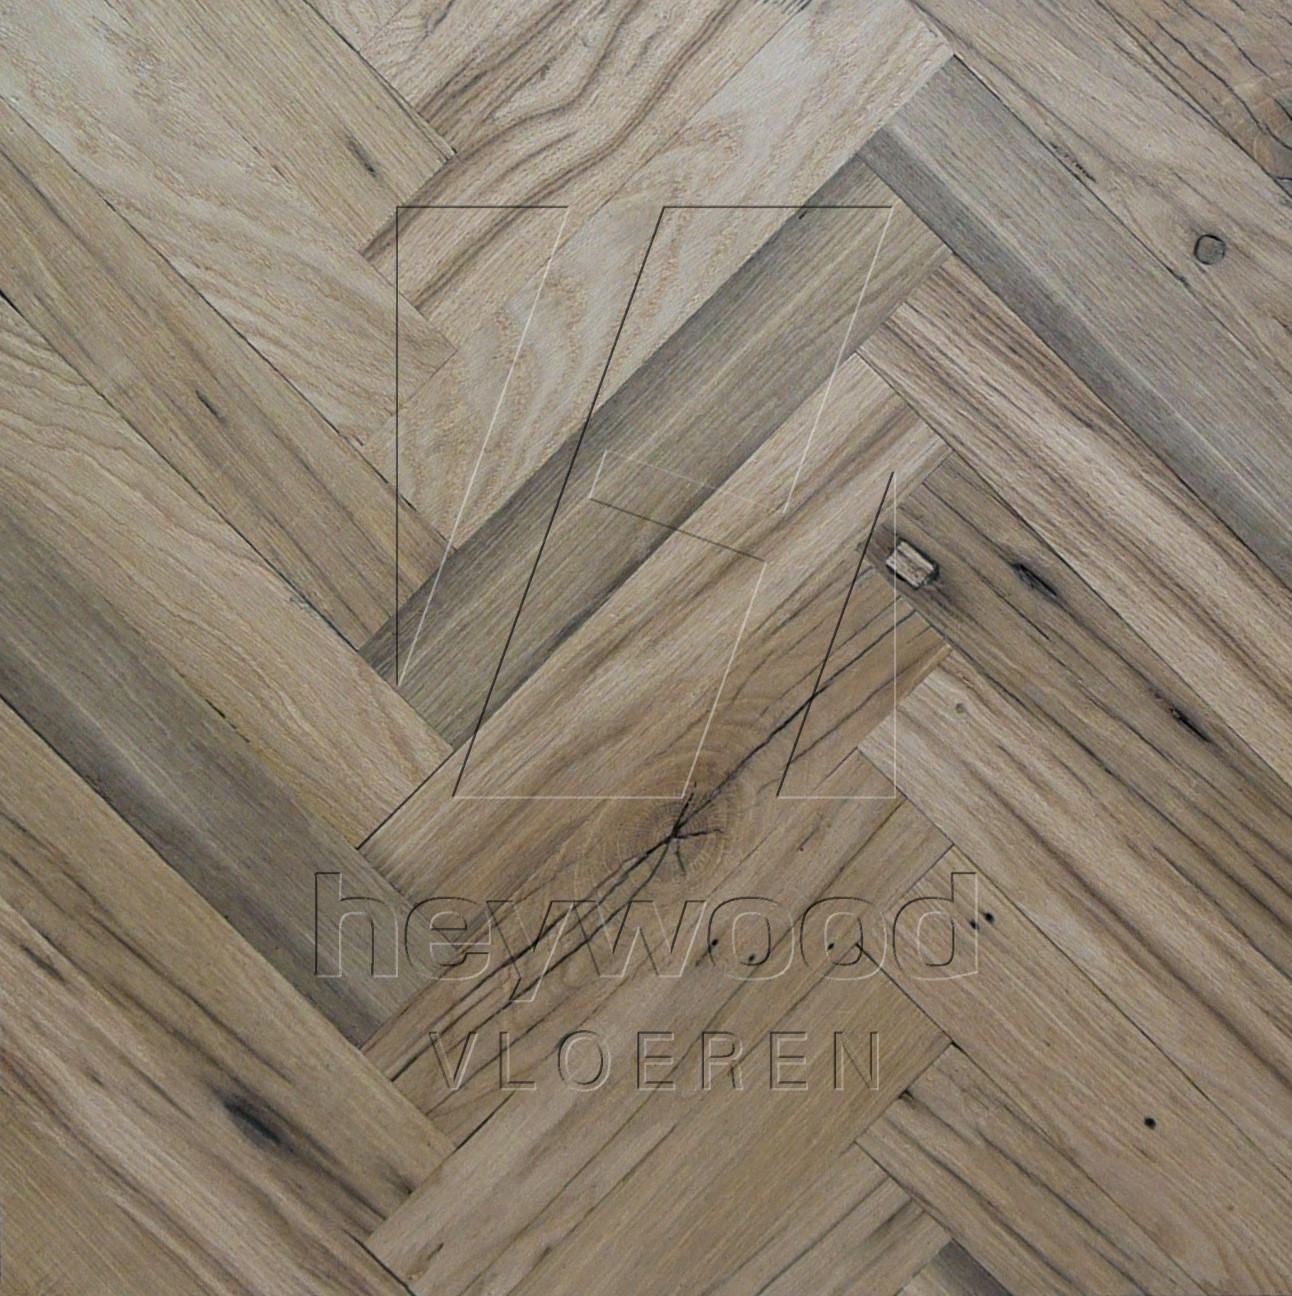 Provence Herringbone 120x600mm (unoiled), 200 years old Reclaimed Oak, Inside in Pattern & Panels (Outsides / Insides) of Old Reclaimed Wood